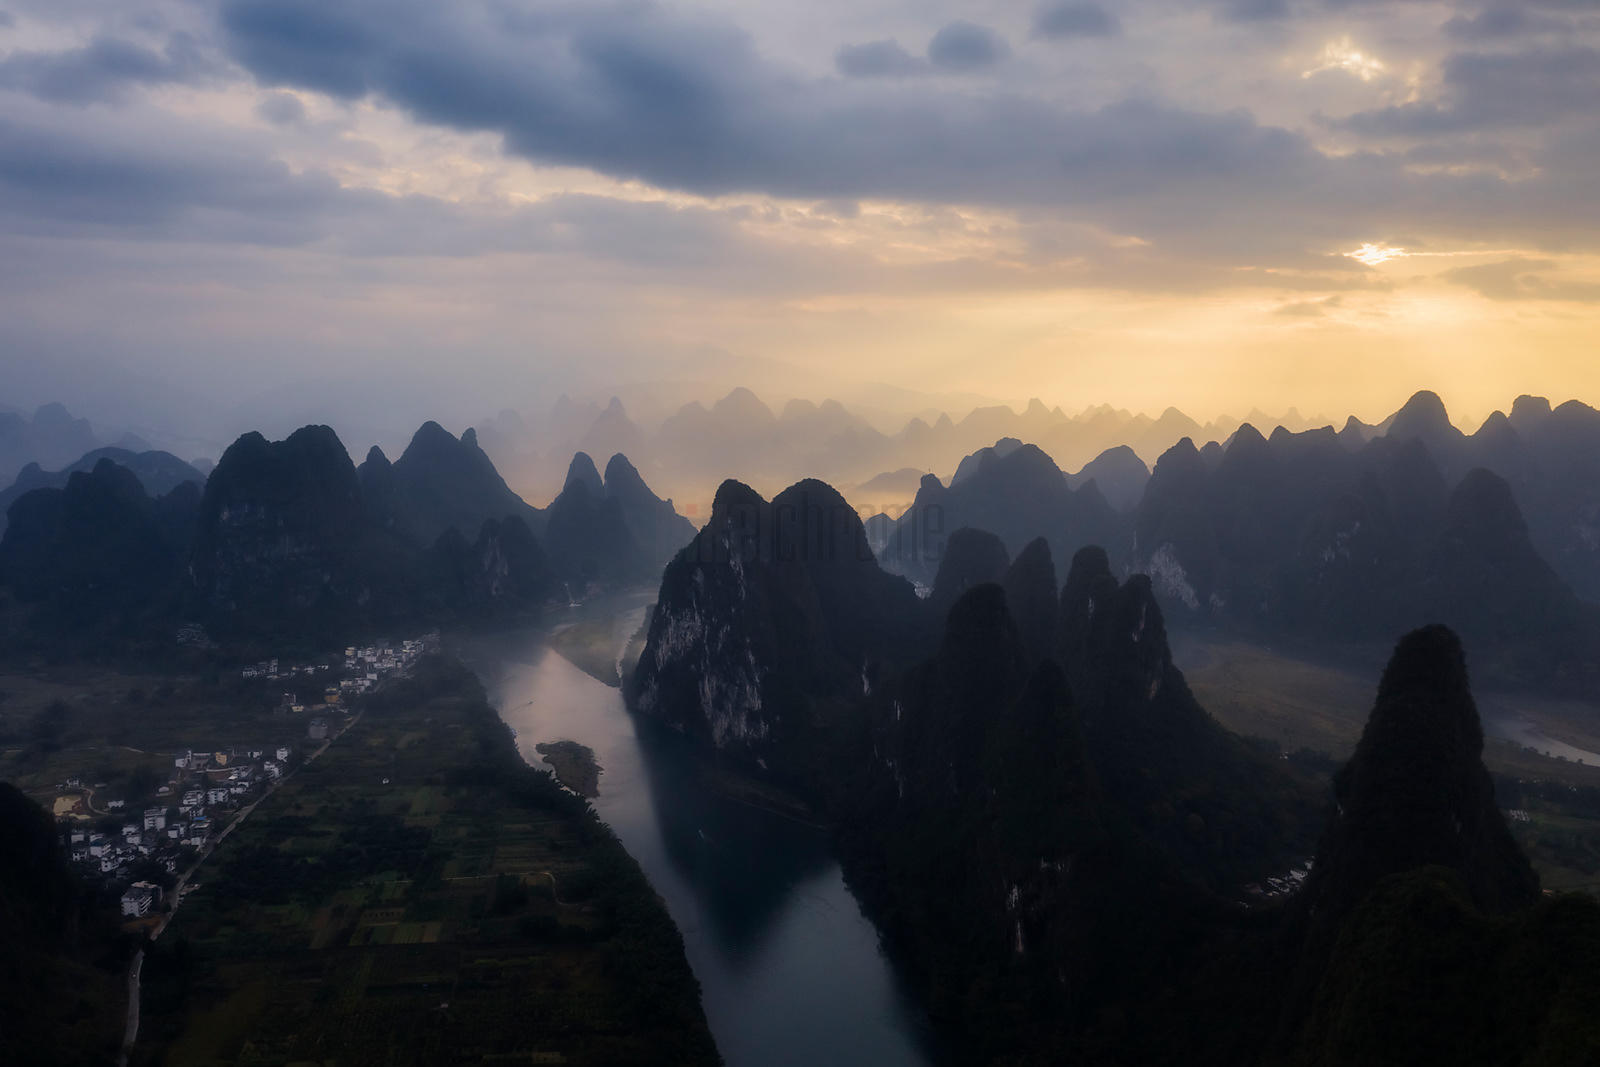 Elevated View of the Karst Mountains and the Li River